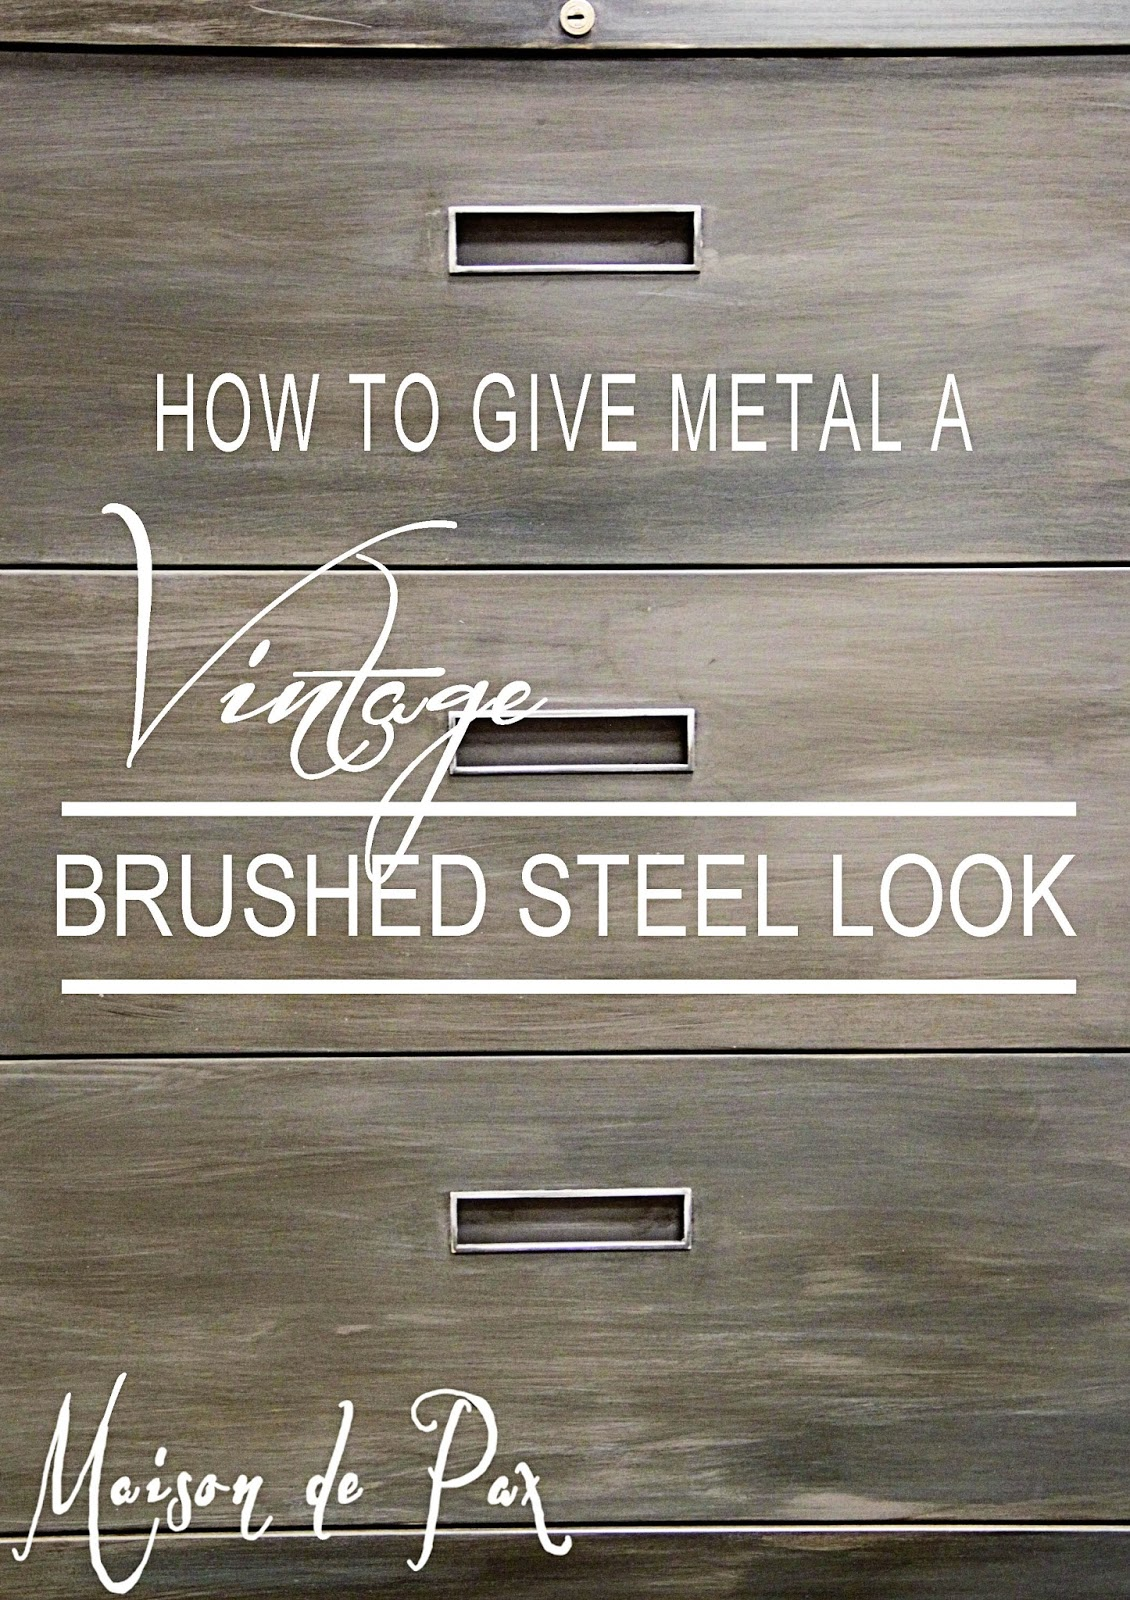 Earlier This Week I Shared How To Give Metal A Rich Vintage Patina Today Want Share Variation Of That Technique Uses The Same Materials But